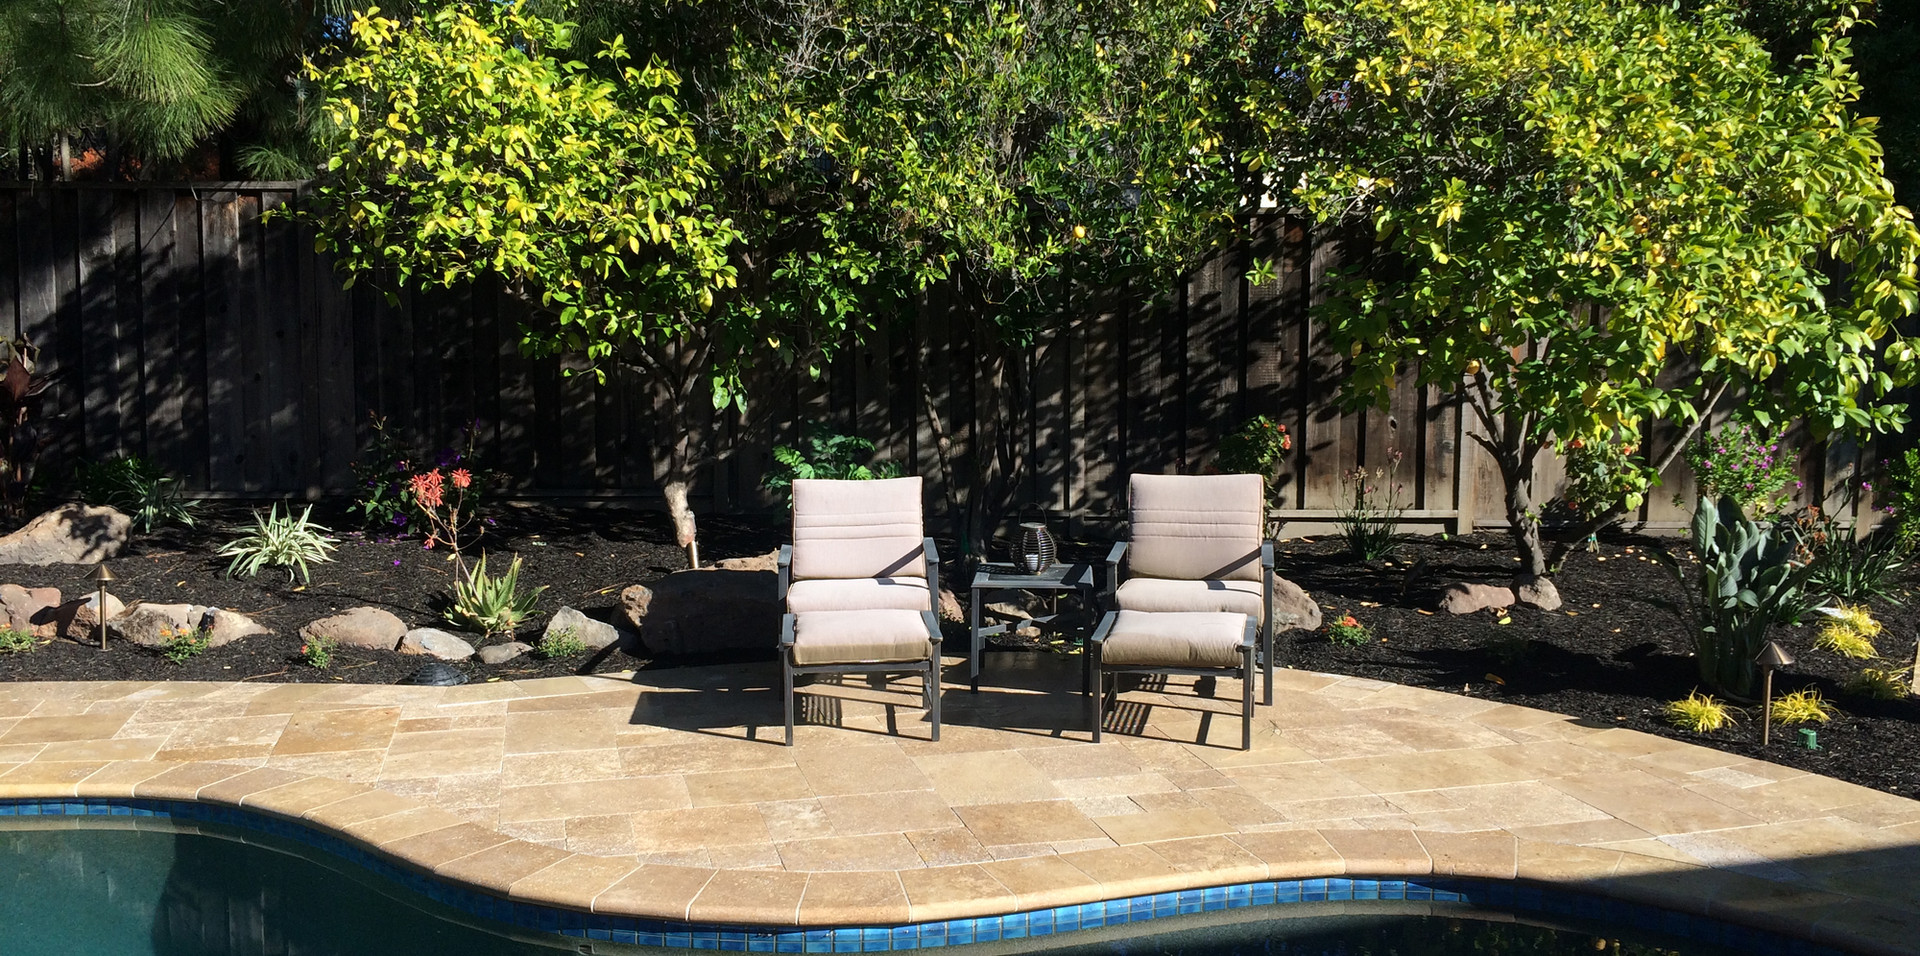 Hercules Pool - Paving Contractor - Pool